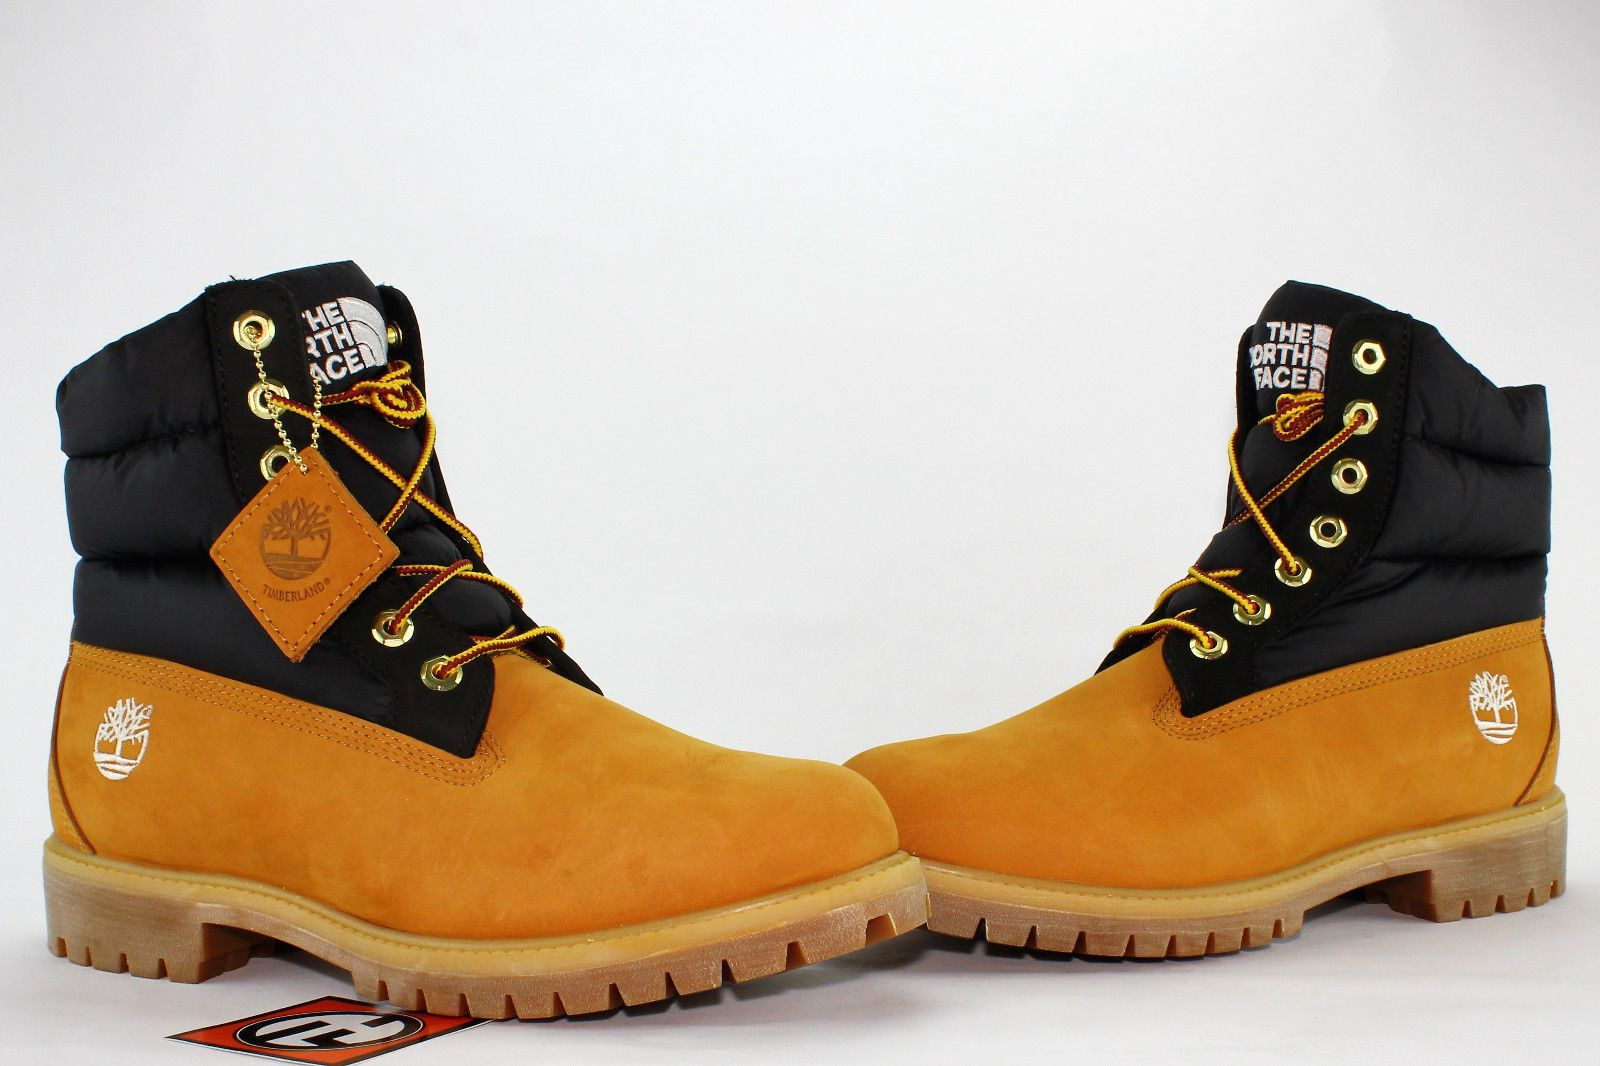 Timberland x The North Face Puffer